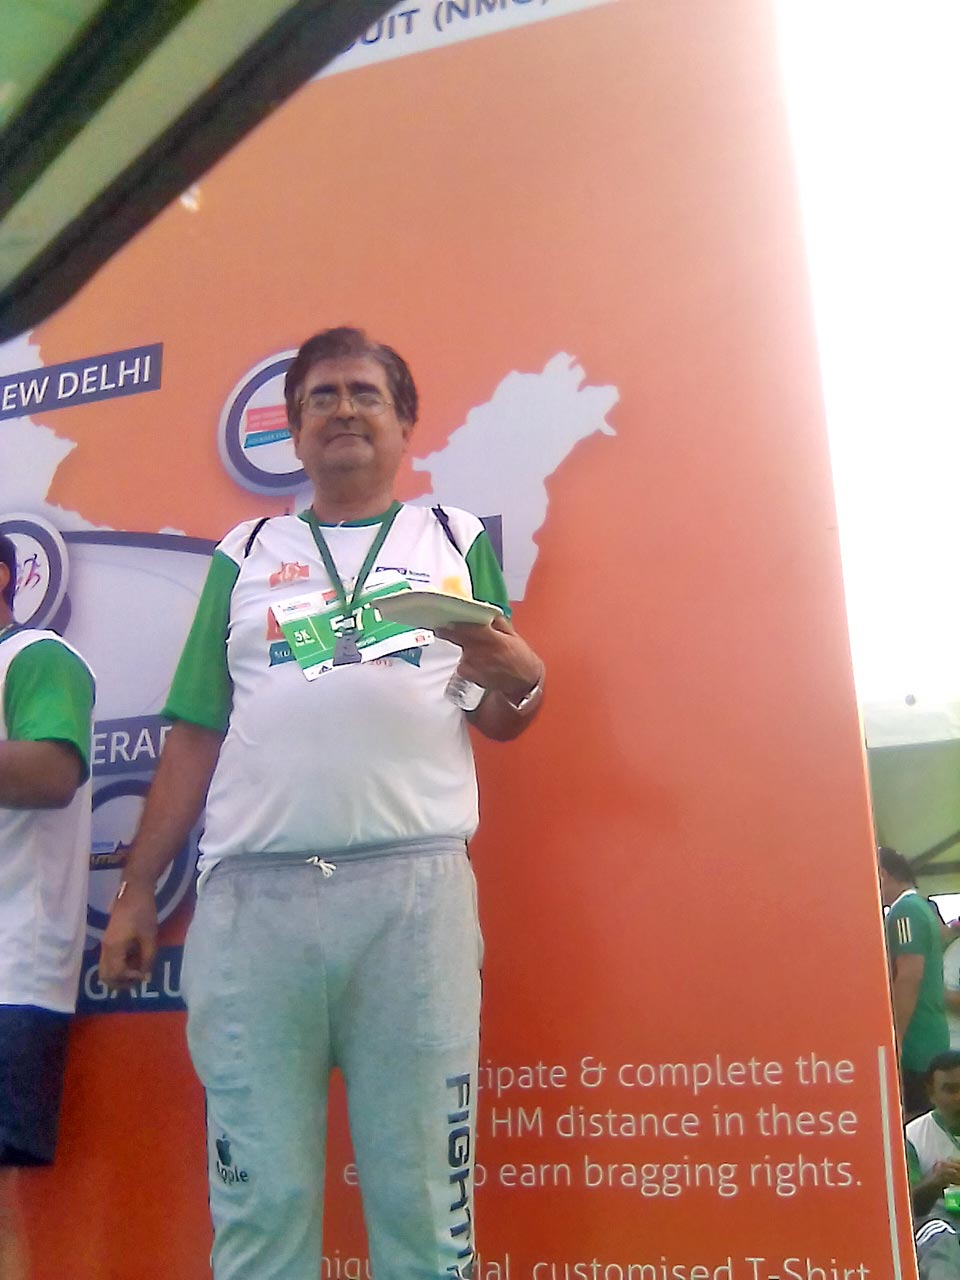 Aramco Brat, Mihir Manek, completes mini IDBI Federal Life Insurance Marathon. Life begins at 40!